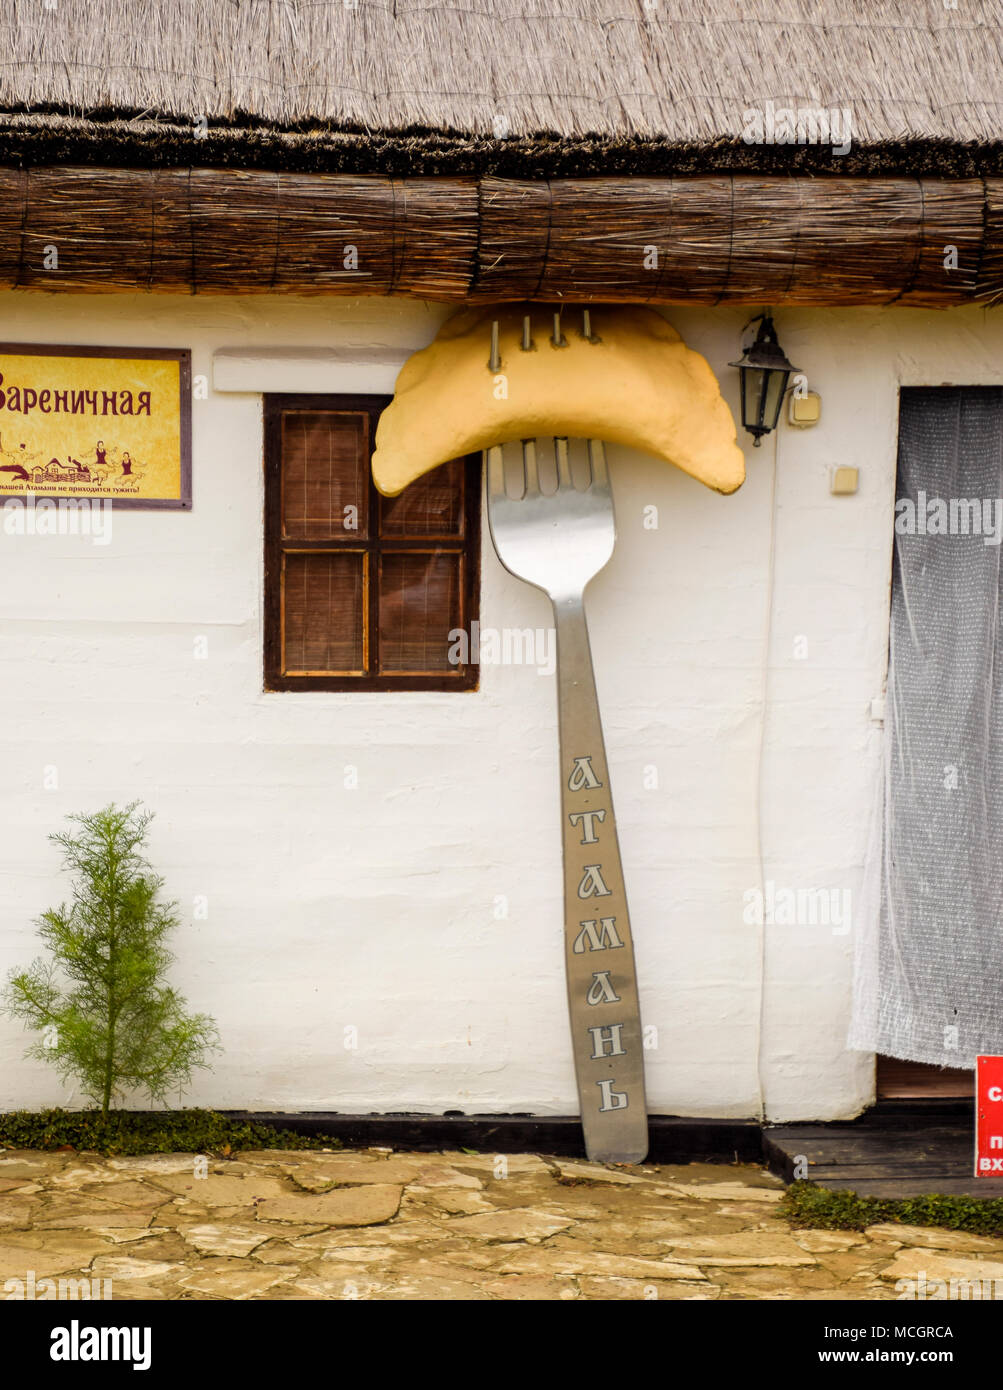 Ataman, Russia - September 26, 2015: Entrance to the diner in the ethnic museum of the village of Ataman in the Kuban. - Stock Image